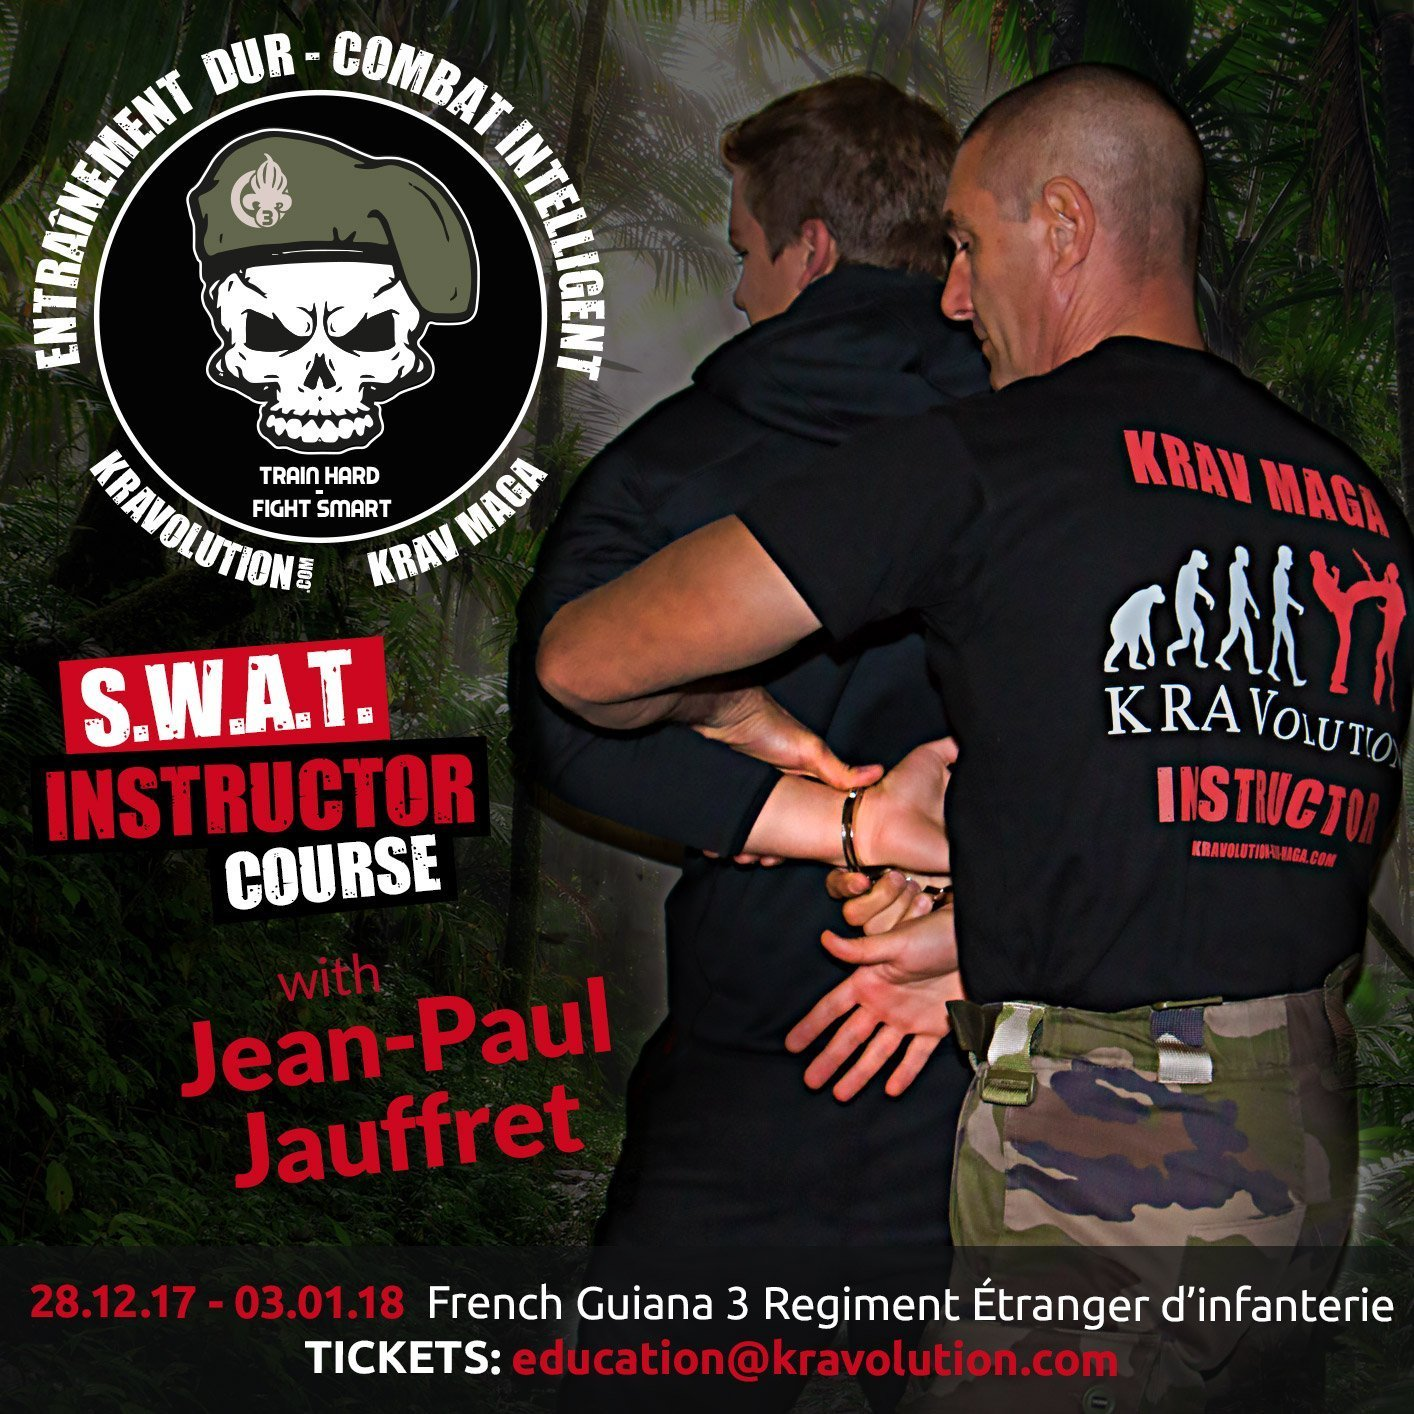 News kravolution swat instructor course in french guiana with jean paul jauffret buycottarizona